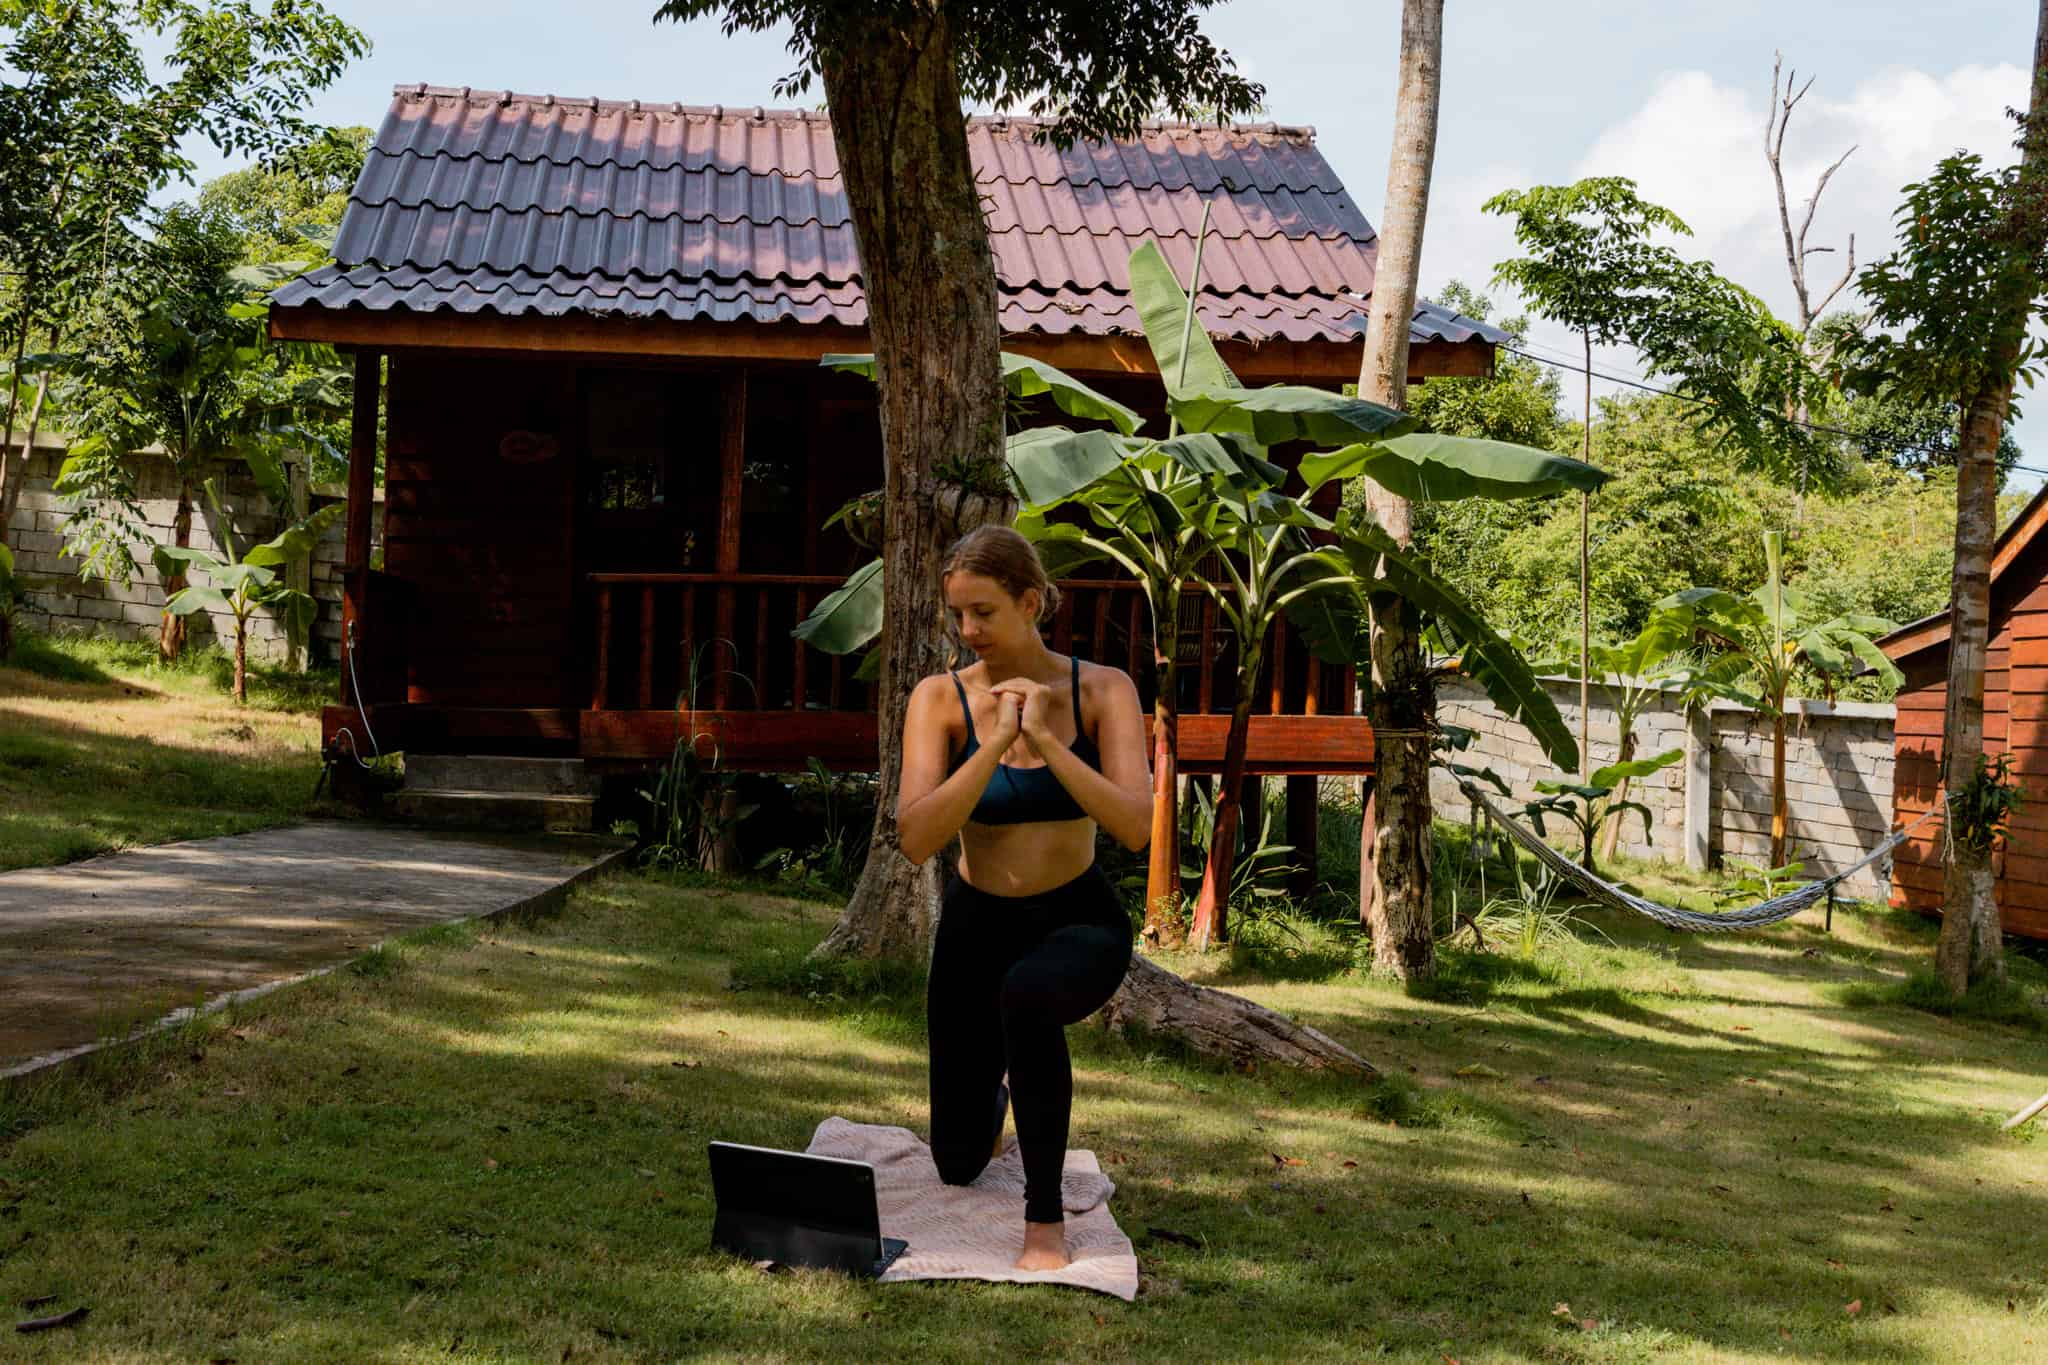 Alicia staying in shape while traveling on iPad in Koh Rong, Cambodia